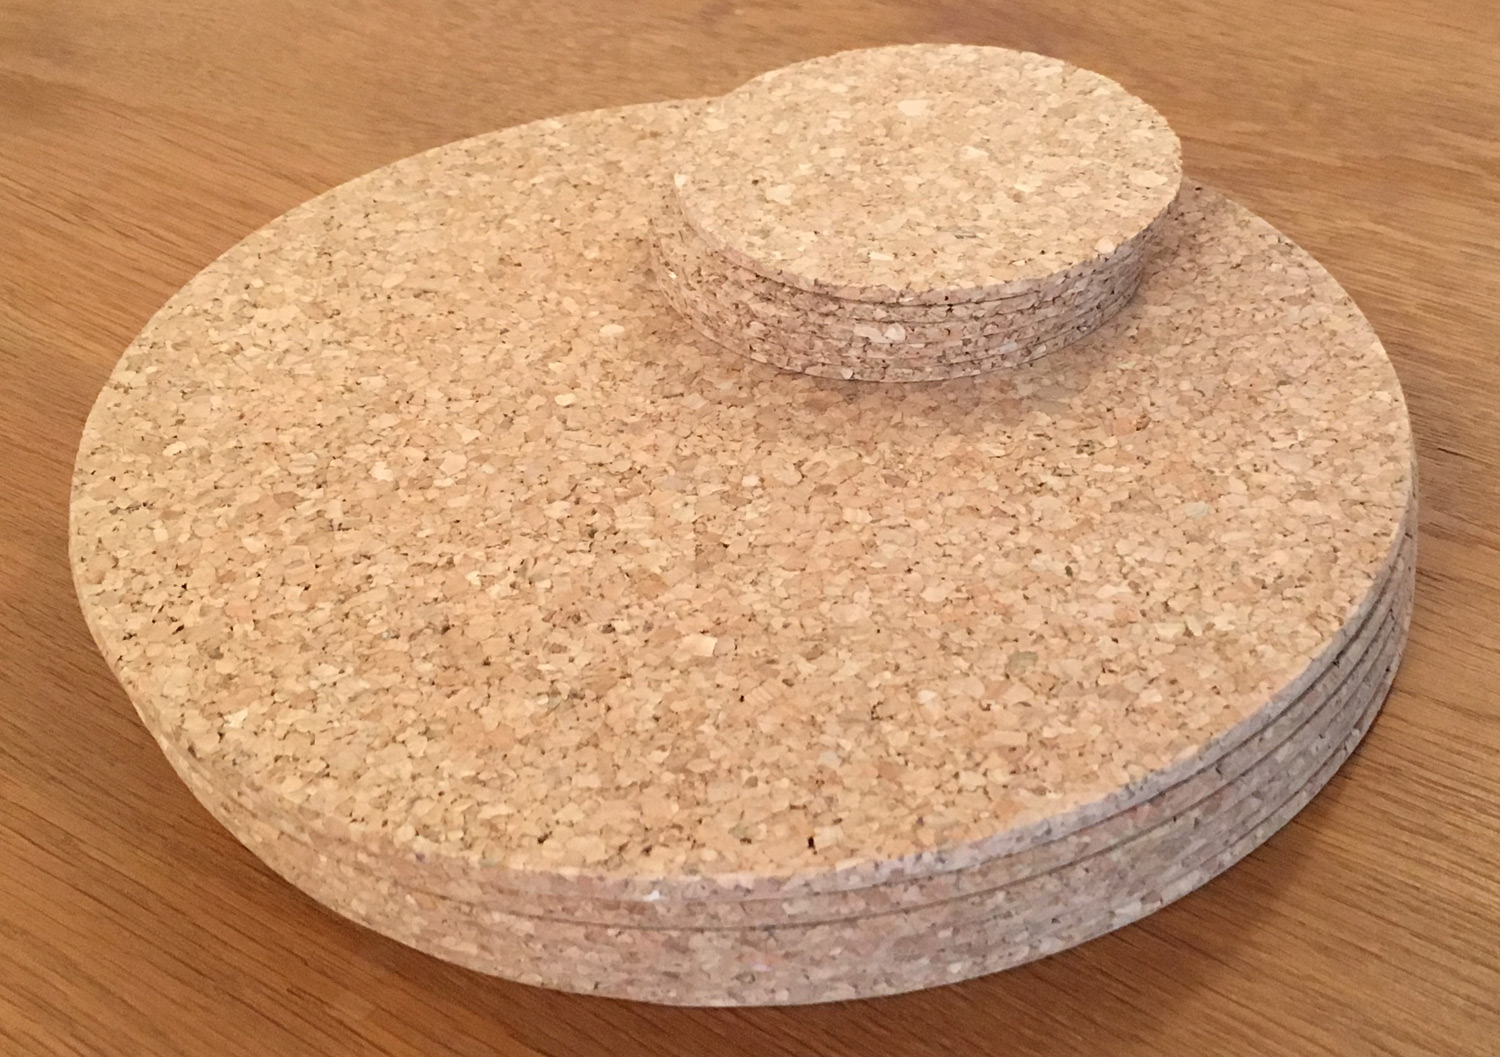 Vintage Round Cork Placemats Drinks Coasters Kitchen  : cork mats coasters from www.ebay.es size 1500 x 1057 jpeg 447kB